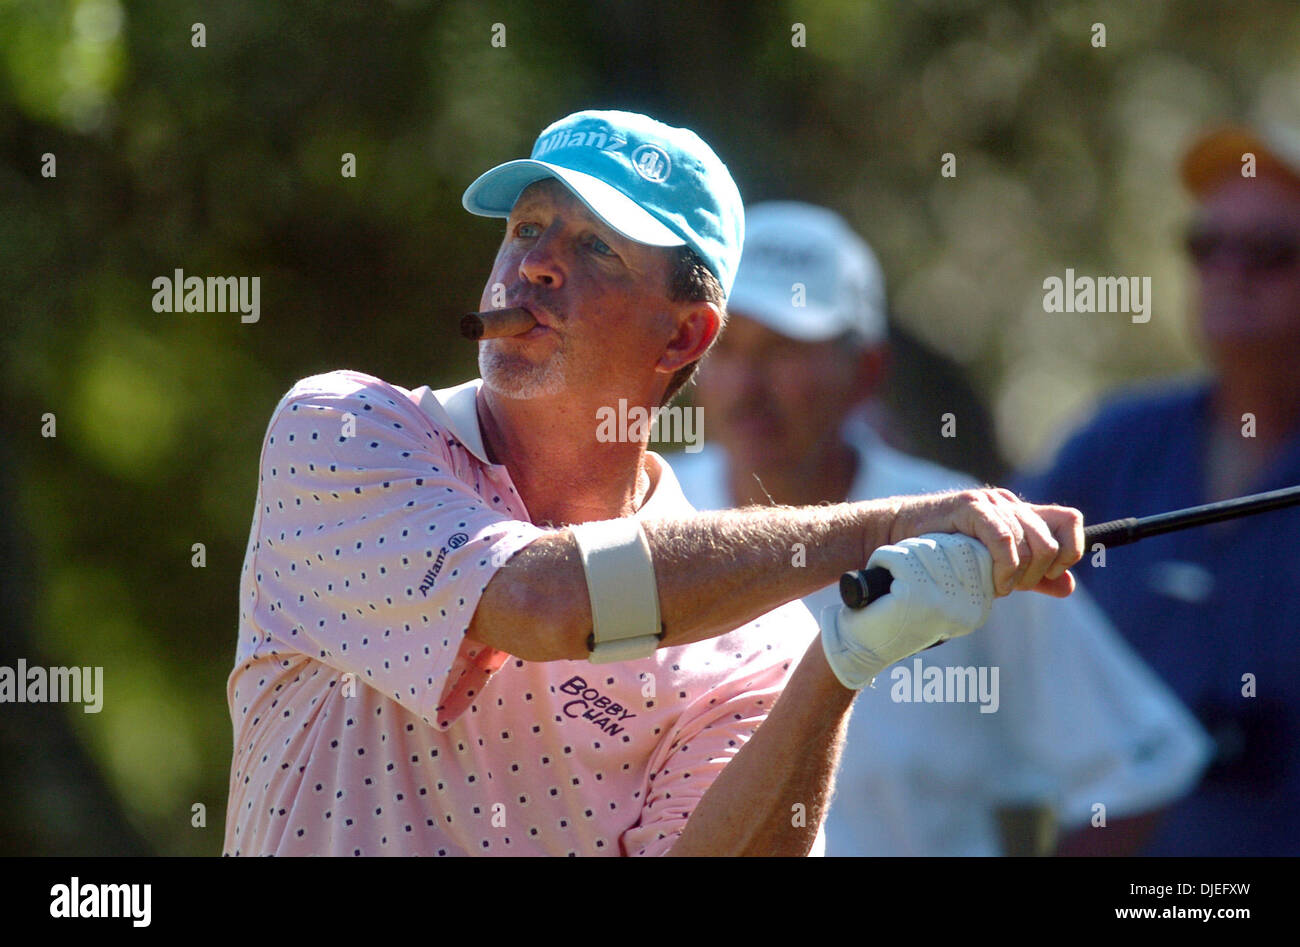 Oct 16, 2004; San Antonio, TX, USA; DANA QUIGLEY keeps his unlit cigar installed as he tees on the 17th Saturday during the second round of the SBC Championship at Oak Hills Country Club. - Stock Image